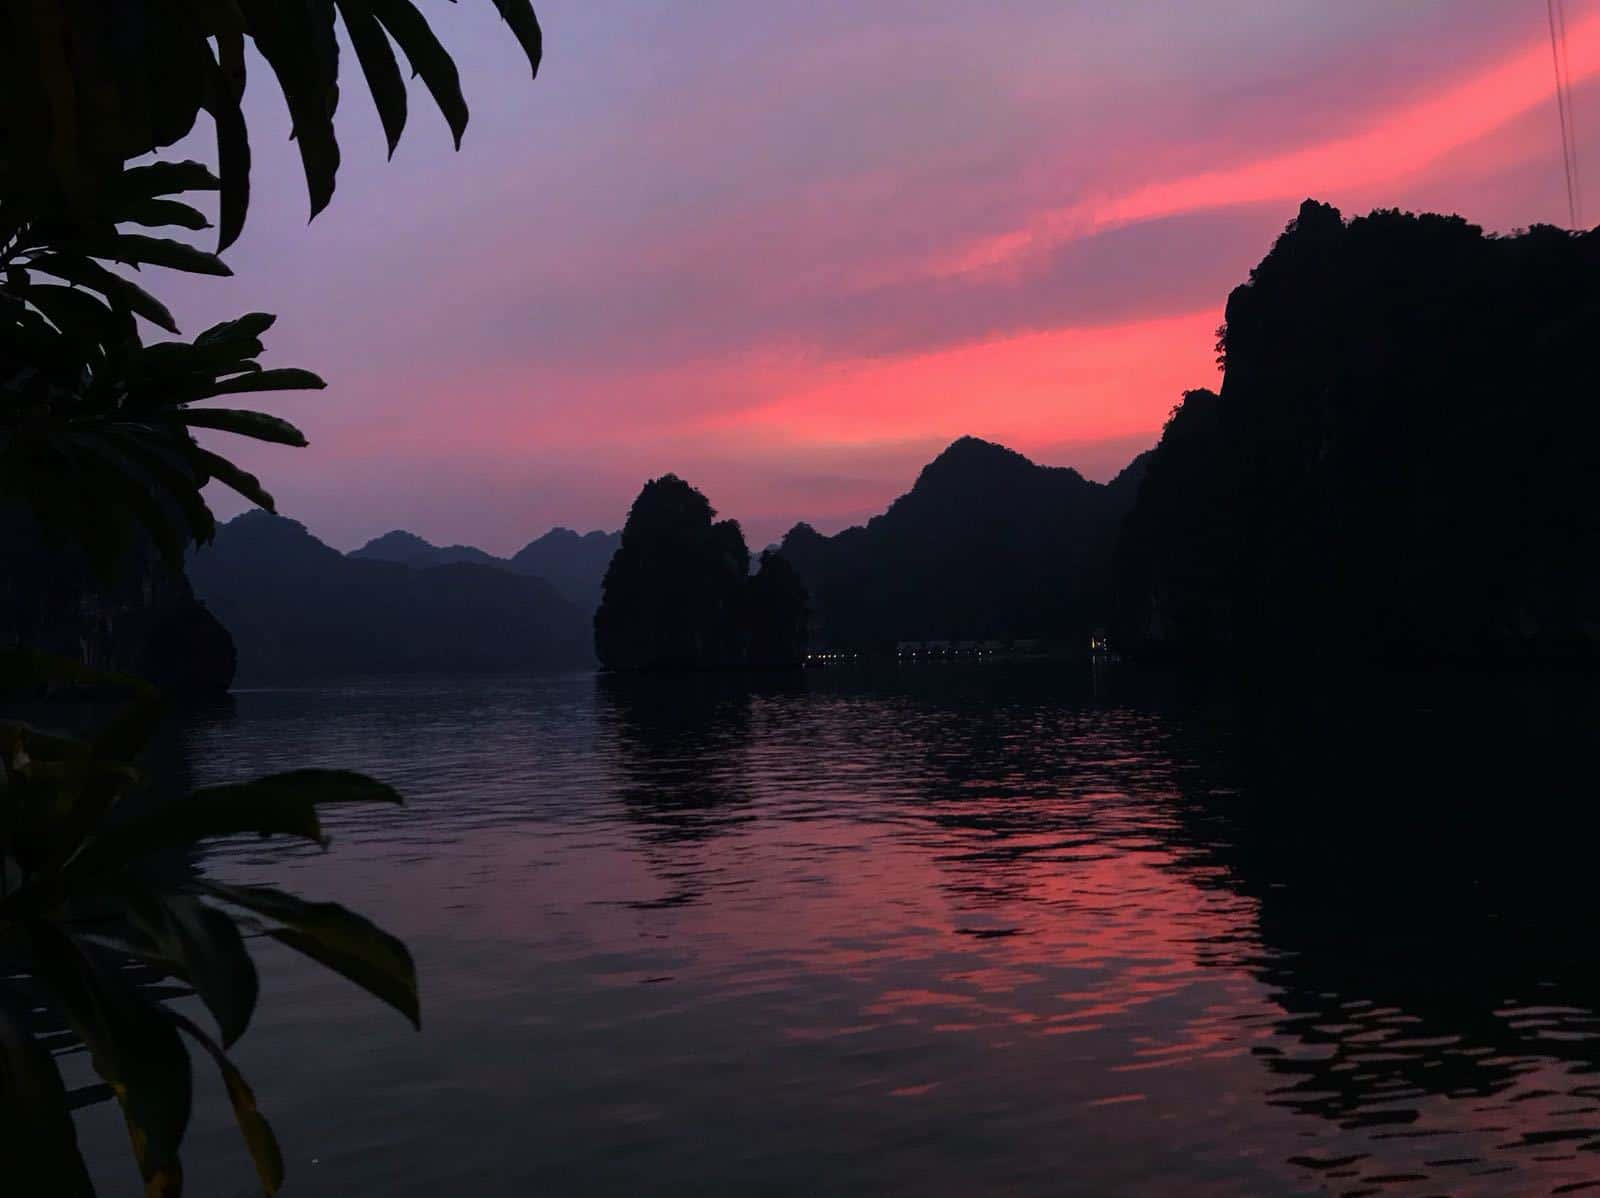 The sunset from Hideaway island, Halong Bay, Vietnam.